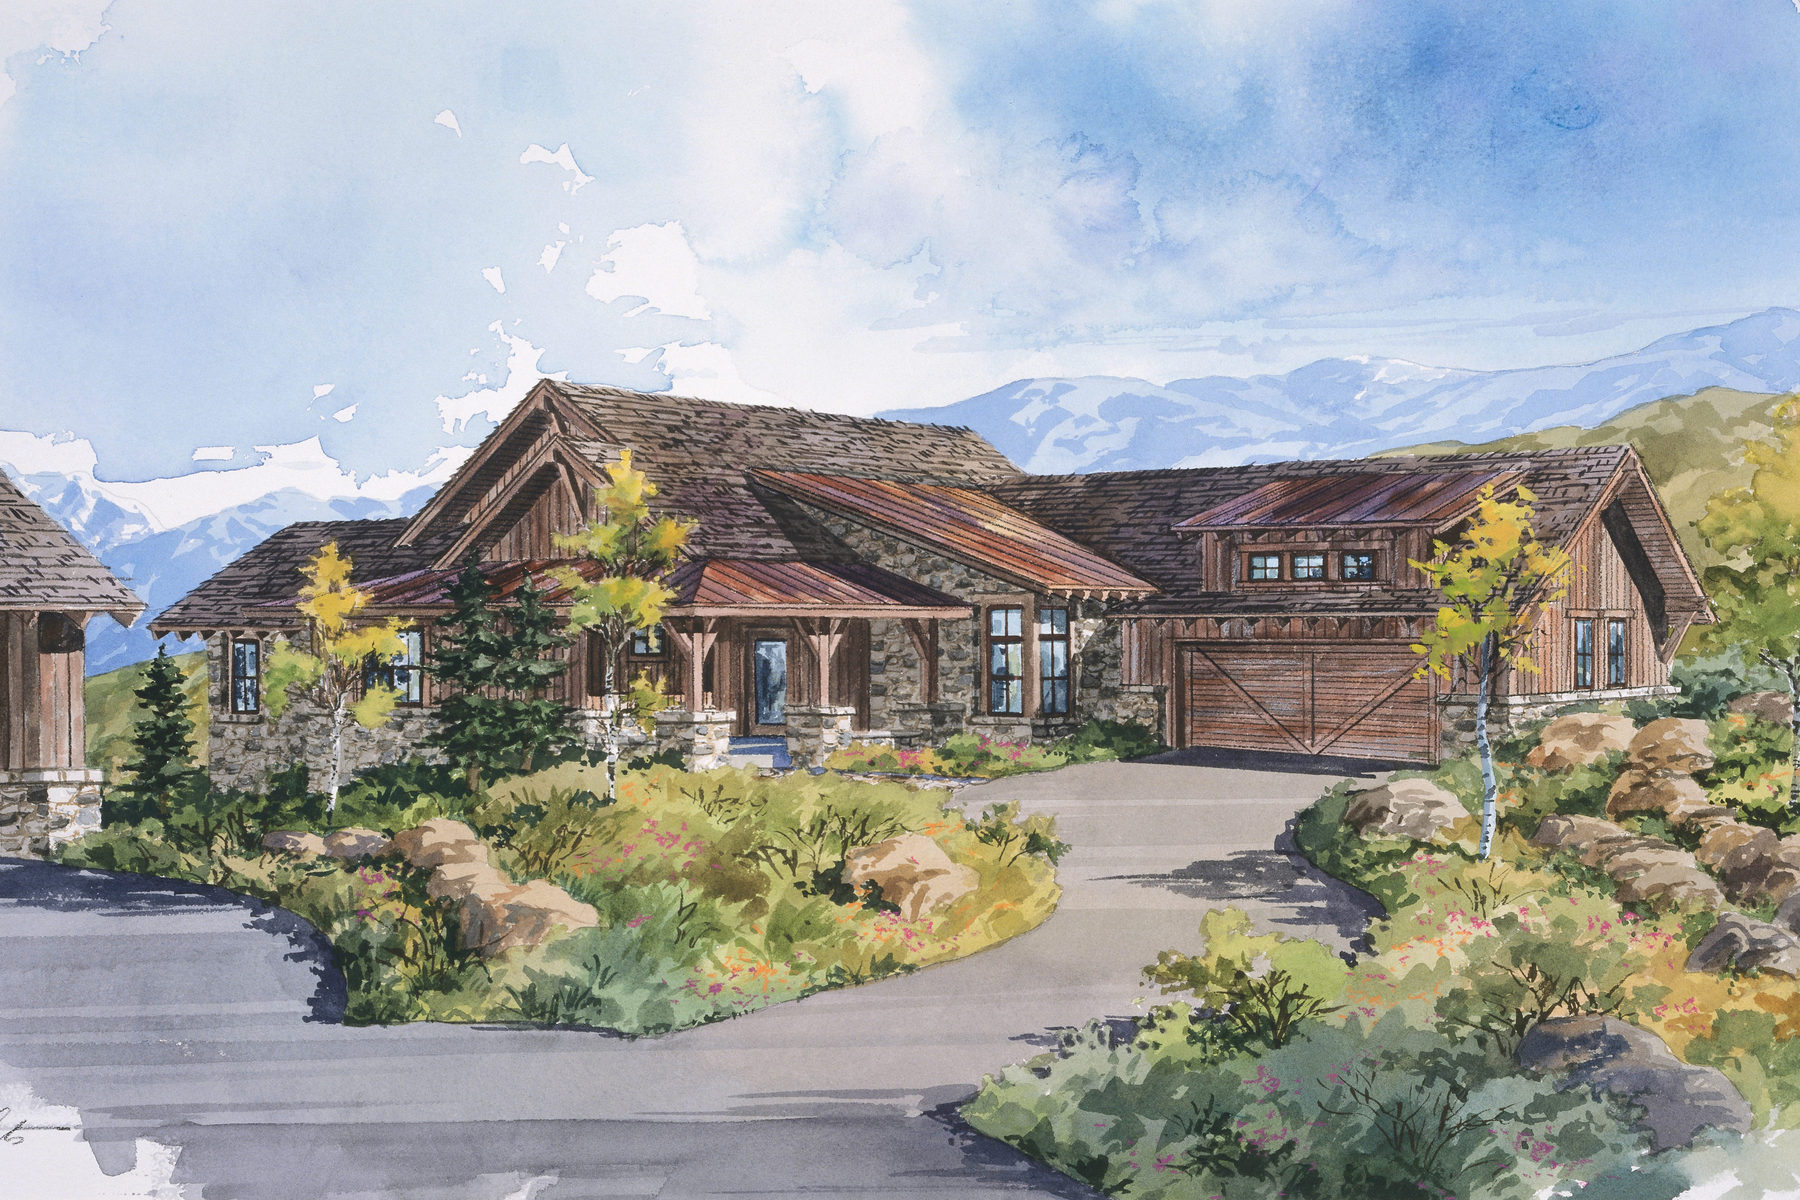 Casa Unifamiliar por un Venta en Park City Cabin in Promontory, a Private Mountain & Golf Recreational Community 3809 Cynthia Cir Lot 24 Park City, Utah 84098 Estados Unidos